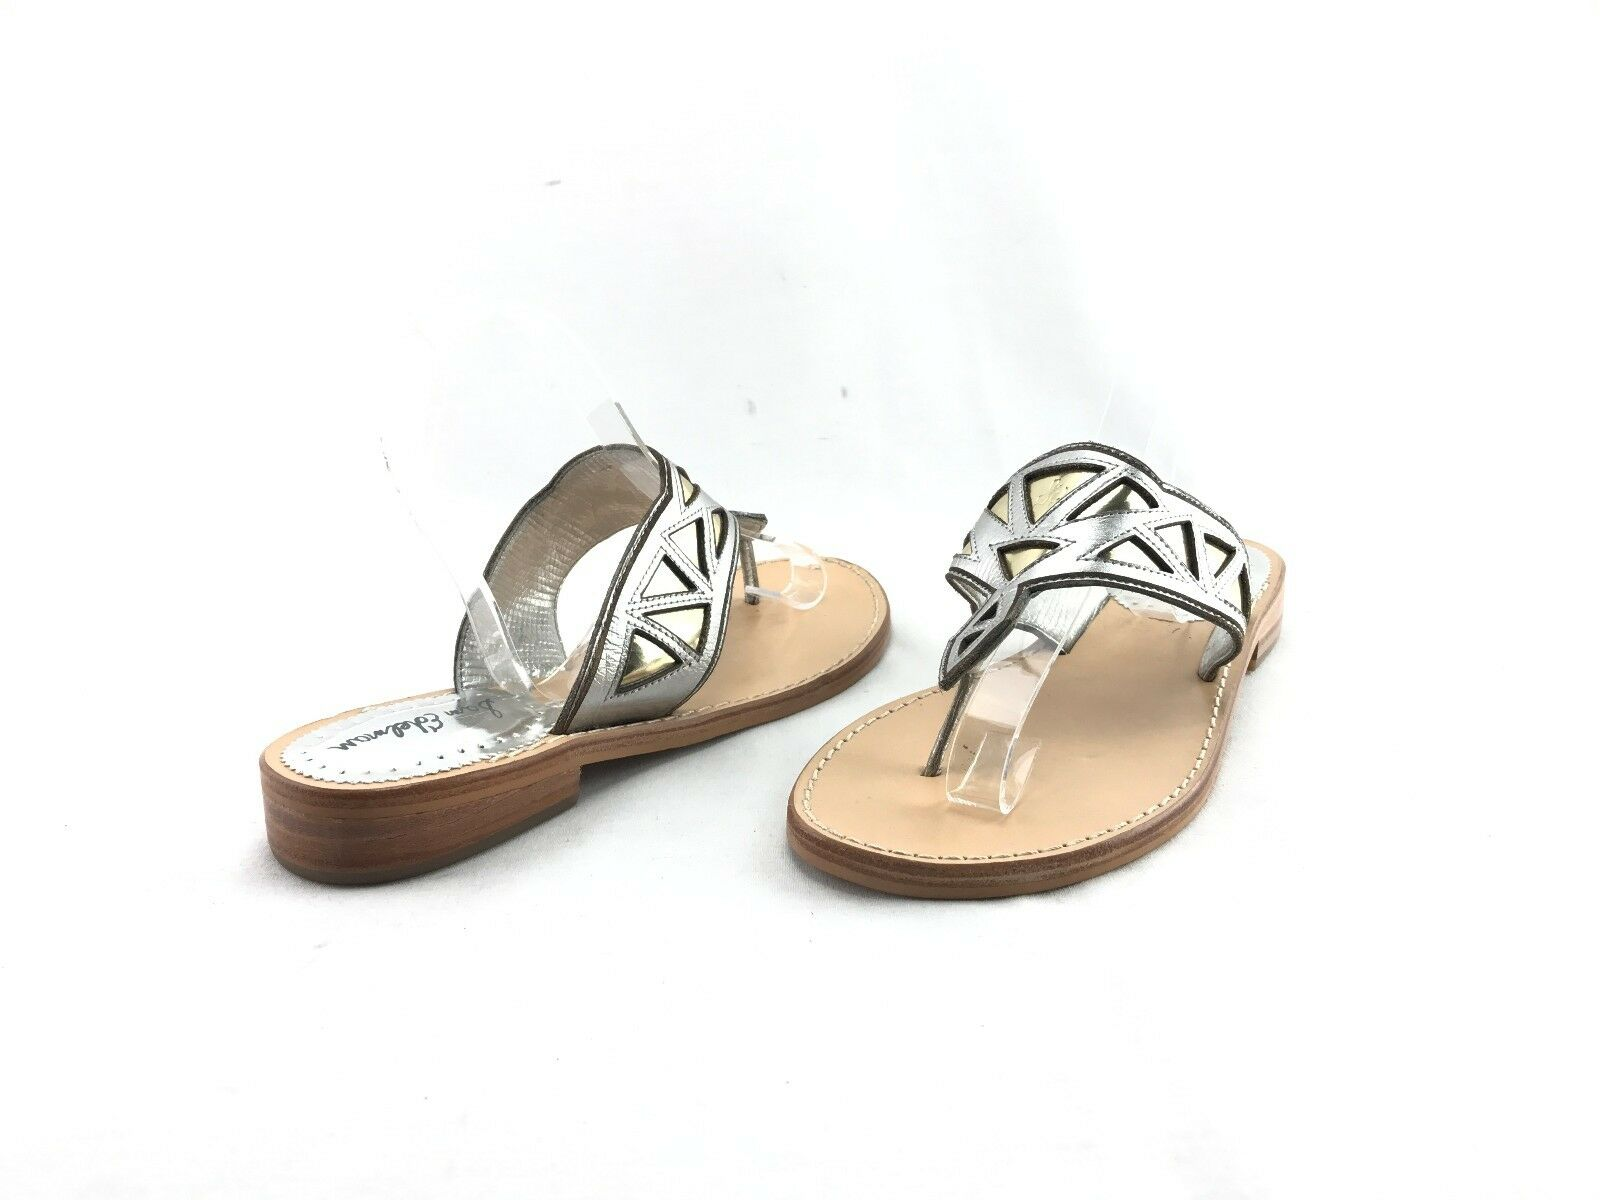 LUCKY BRAND 227558 beige / black fabric ankle strap wedge espadrilles sz. 9.5